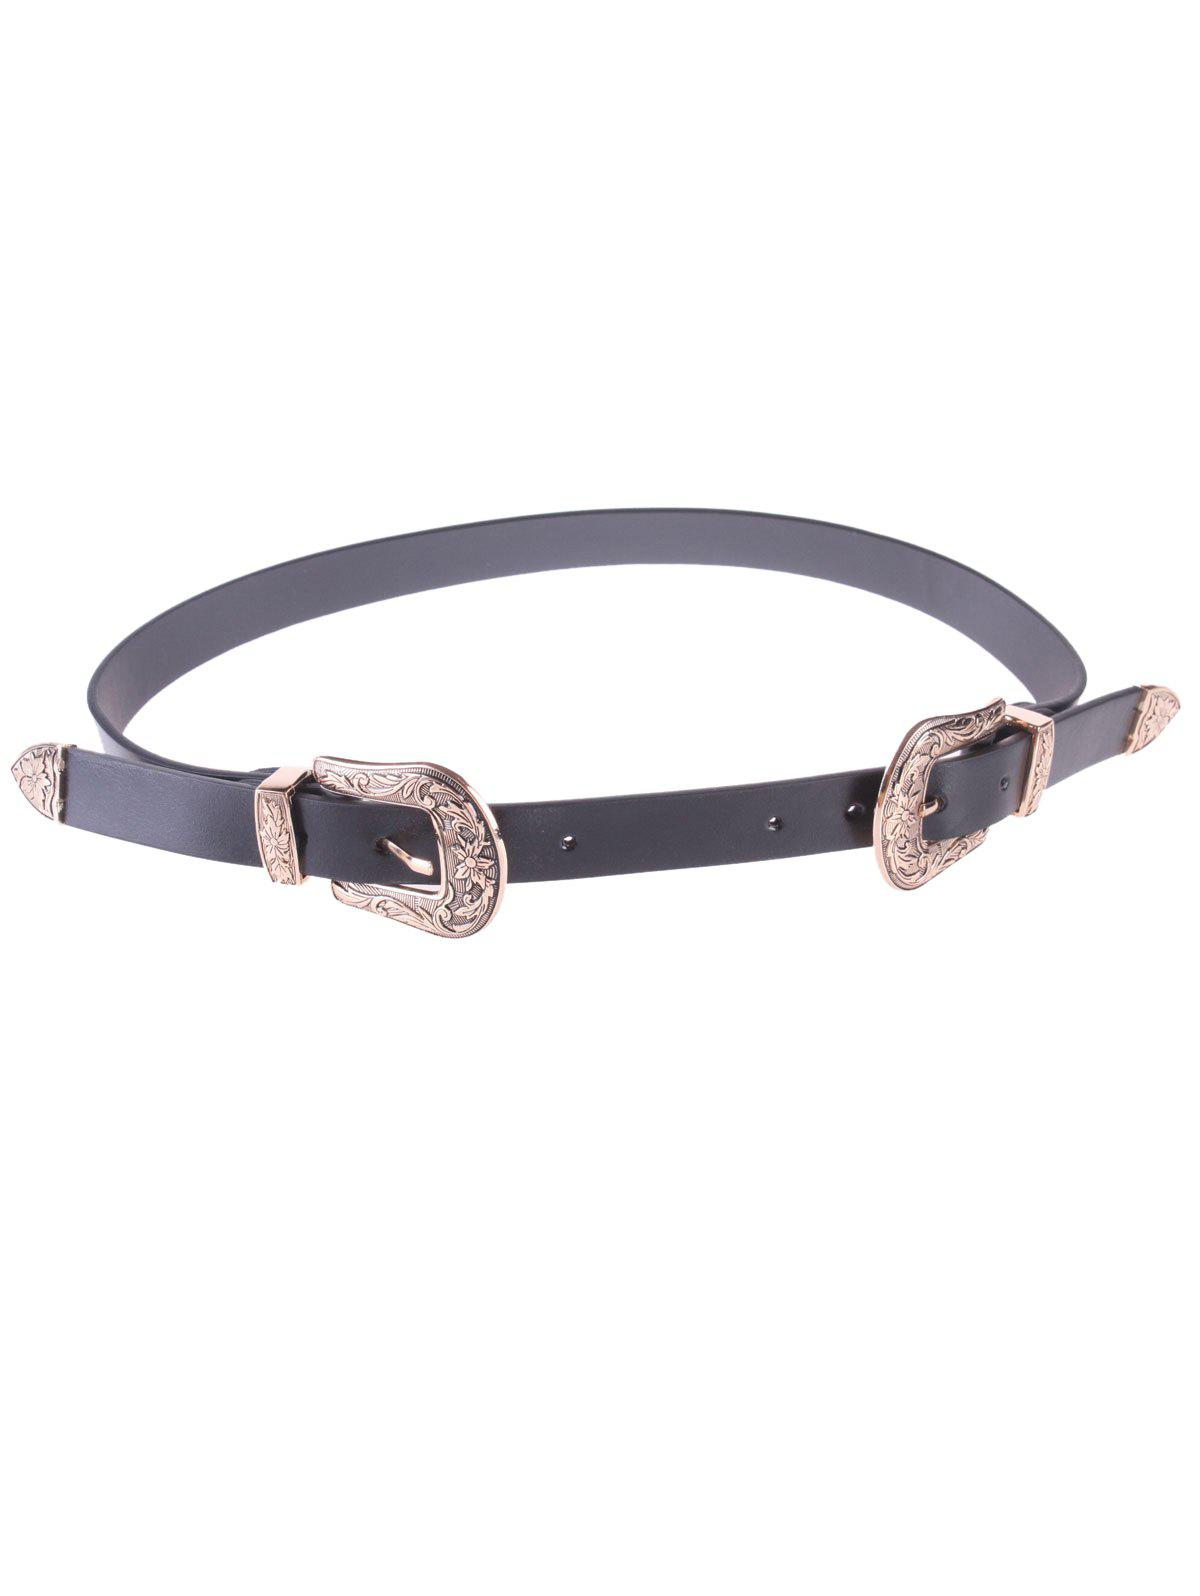 Chic Double Buckles Waist Belt, Black